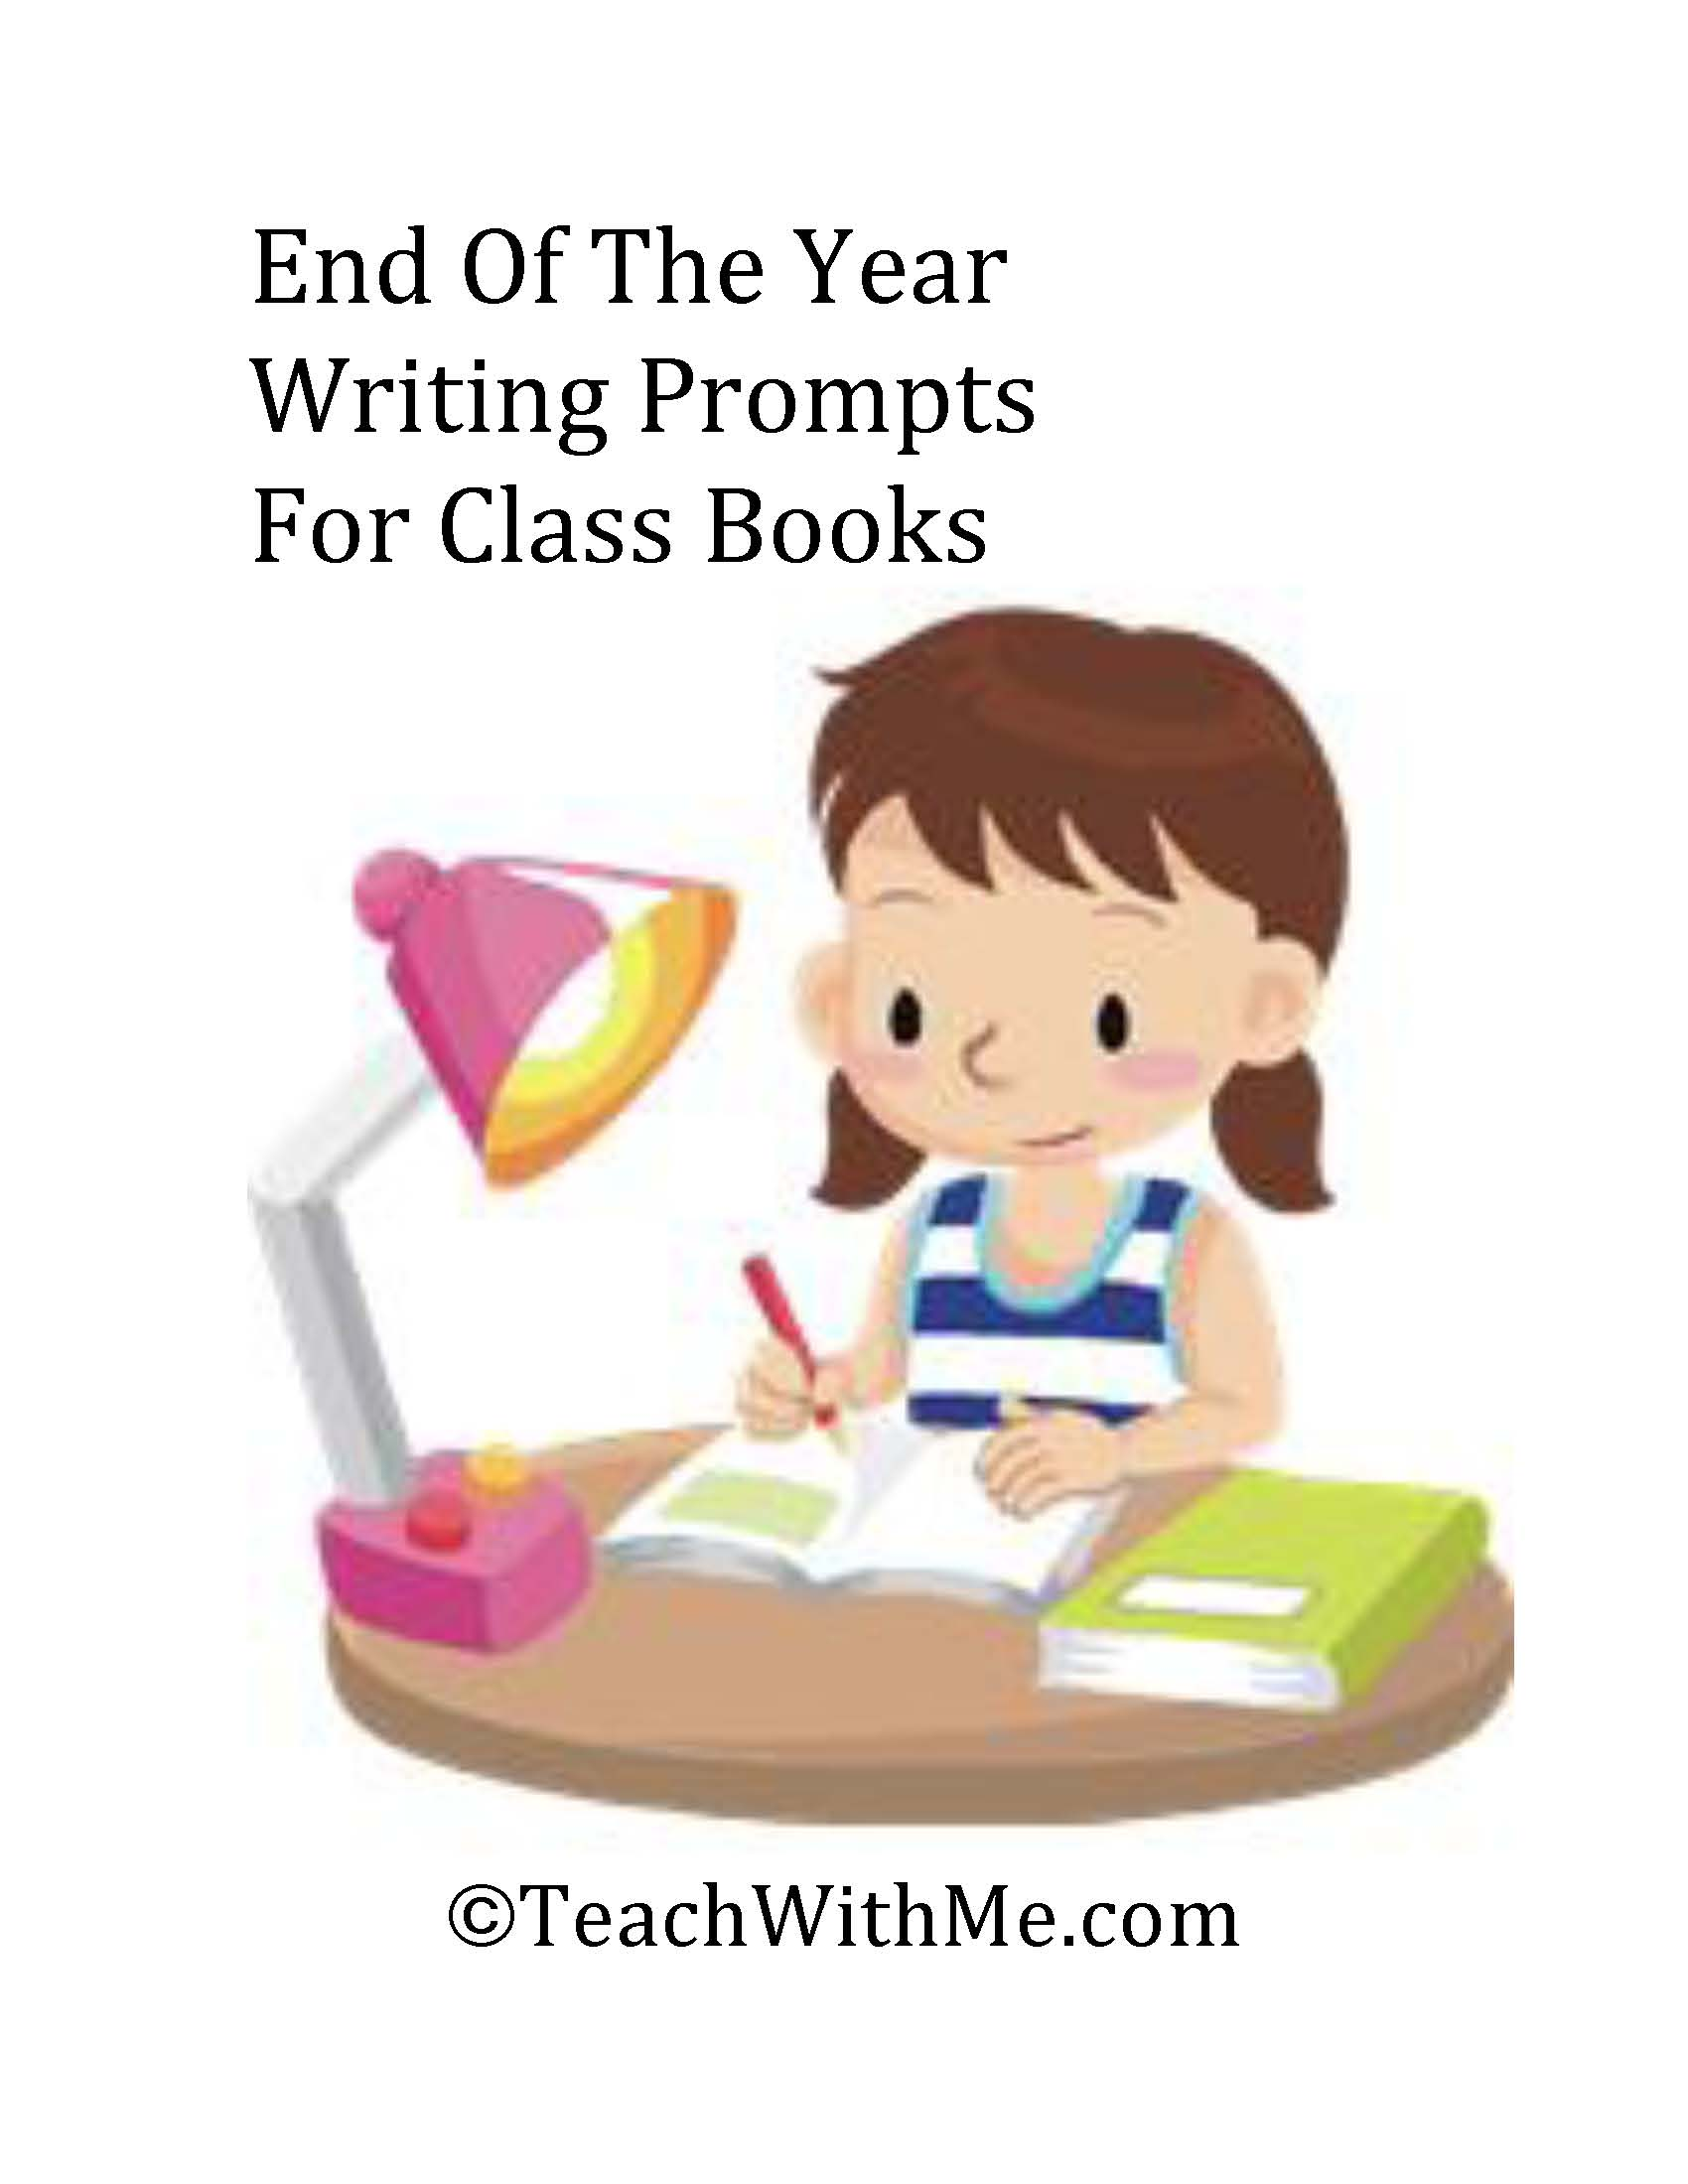 end of the year writing prompts, end of the year writing activities, daily 5 activities for the end of the year, class books, making class books, story wheels, fathers day ideas, ideas for fathers day, father day cards, fathers day booklet